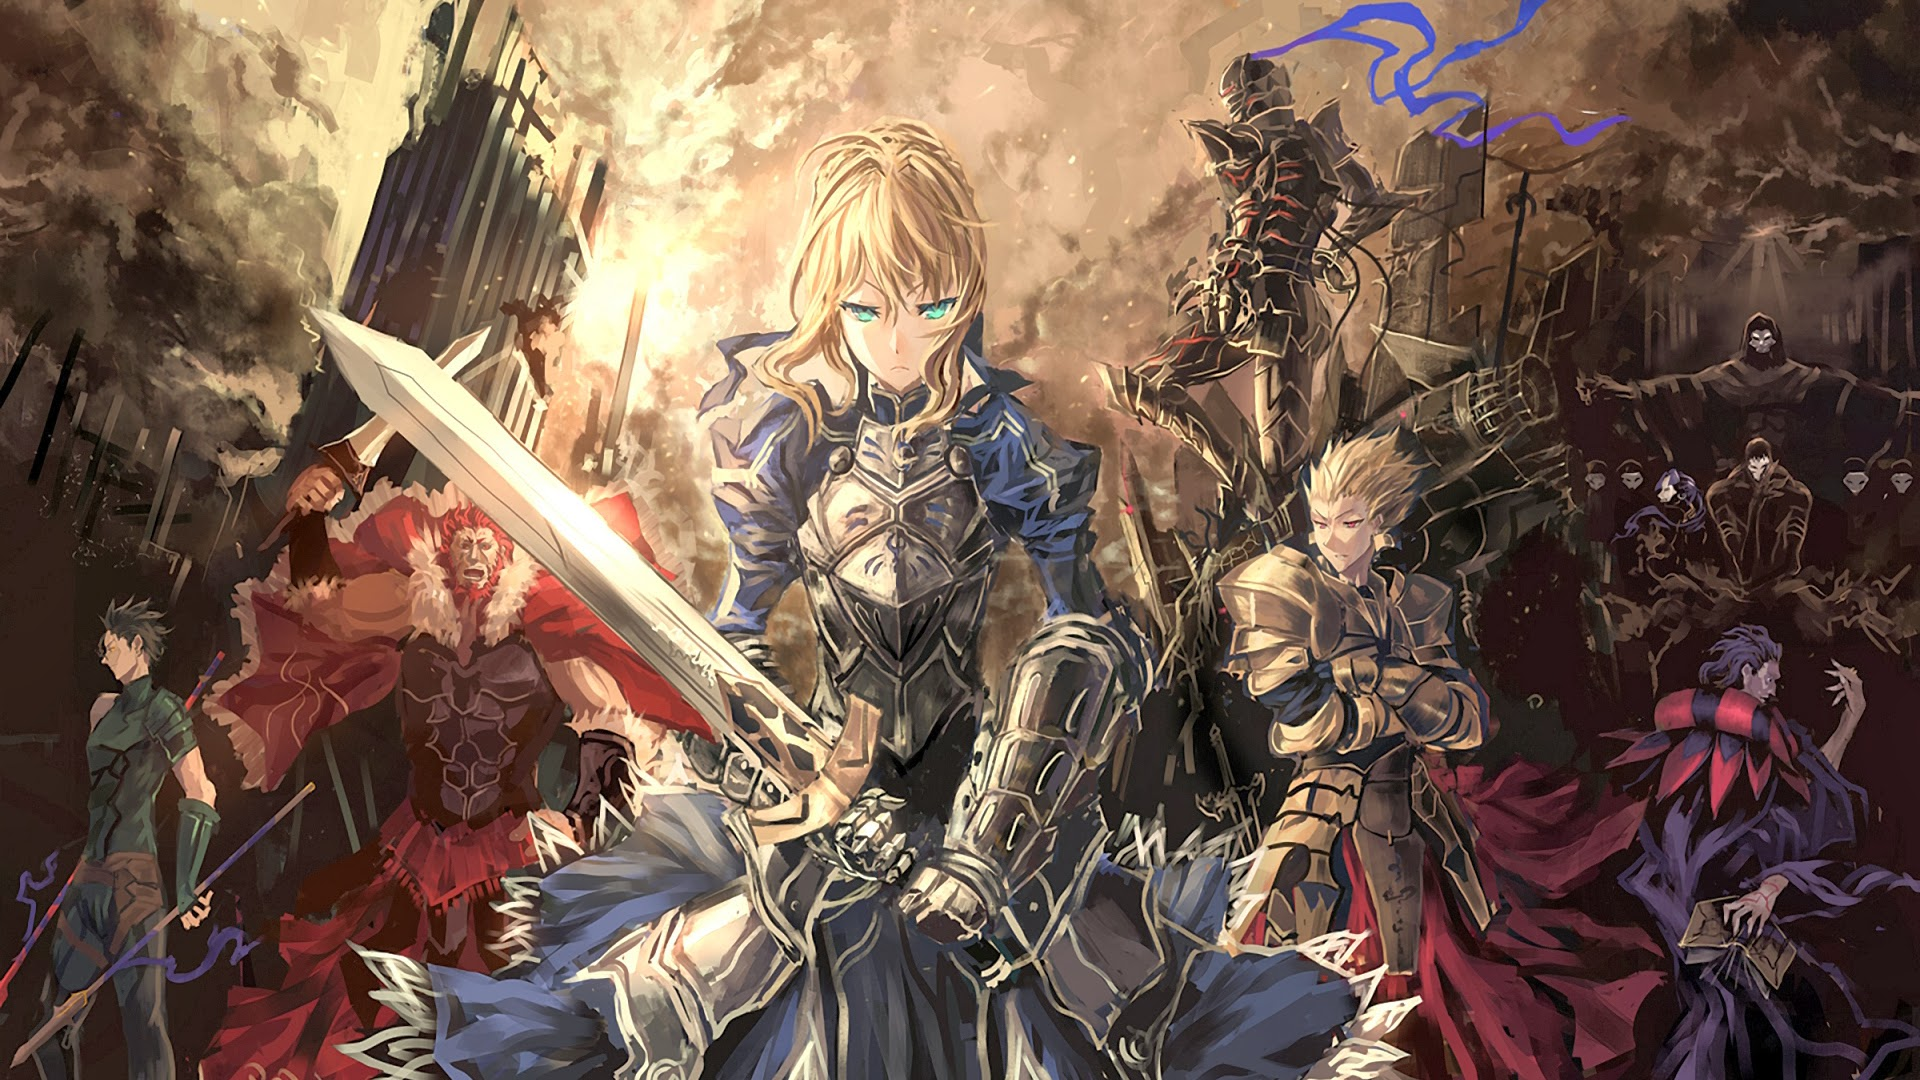 Fate Stay Night Wallpaper Anime Saber Gilgames Armor Knight Sword 1920x1080 A804